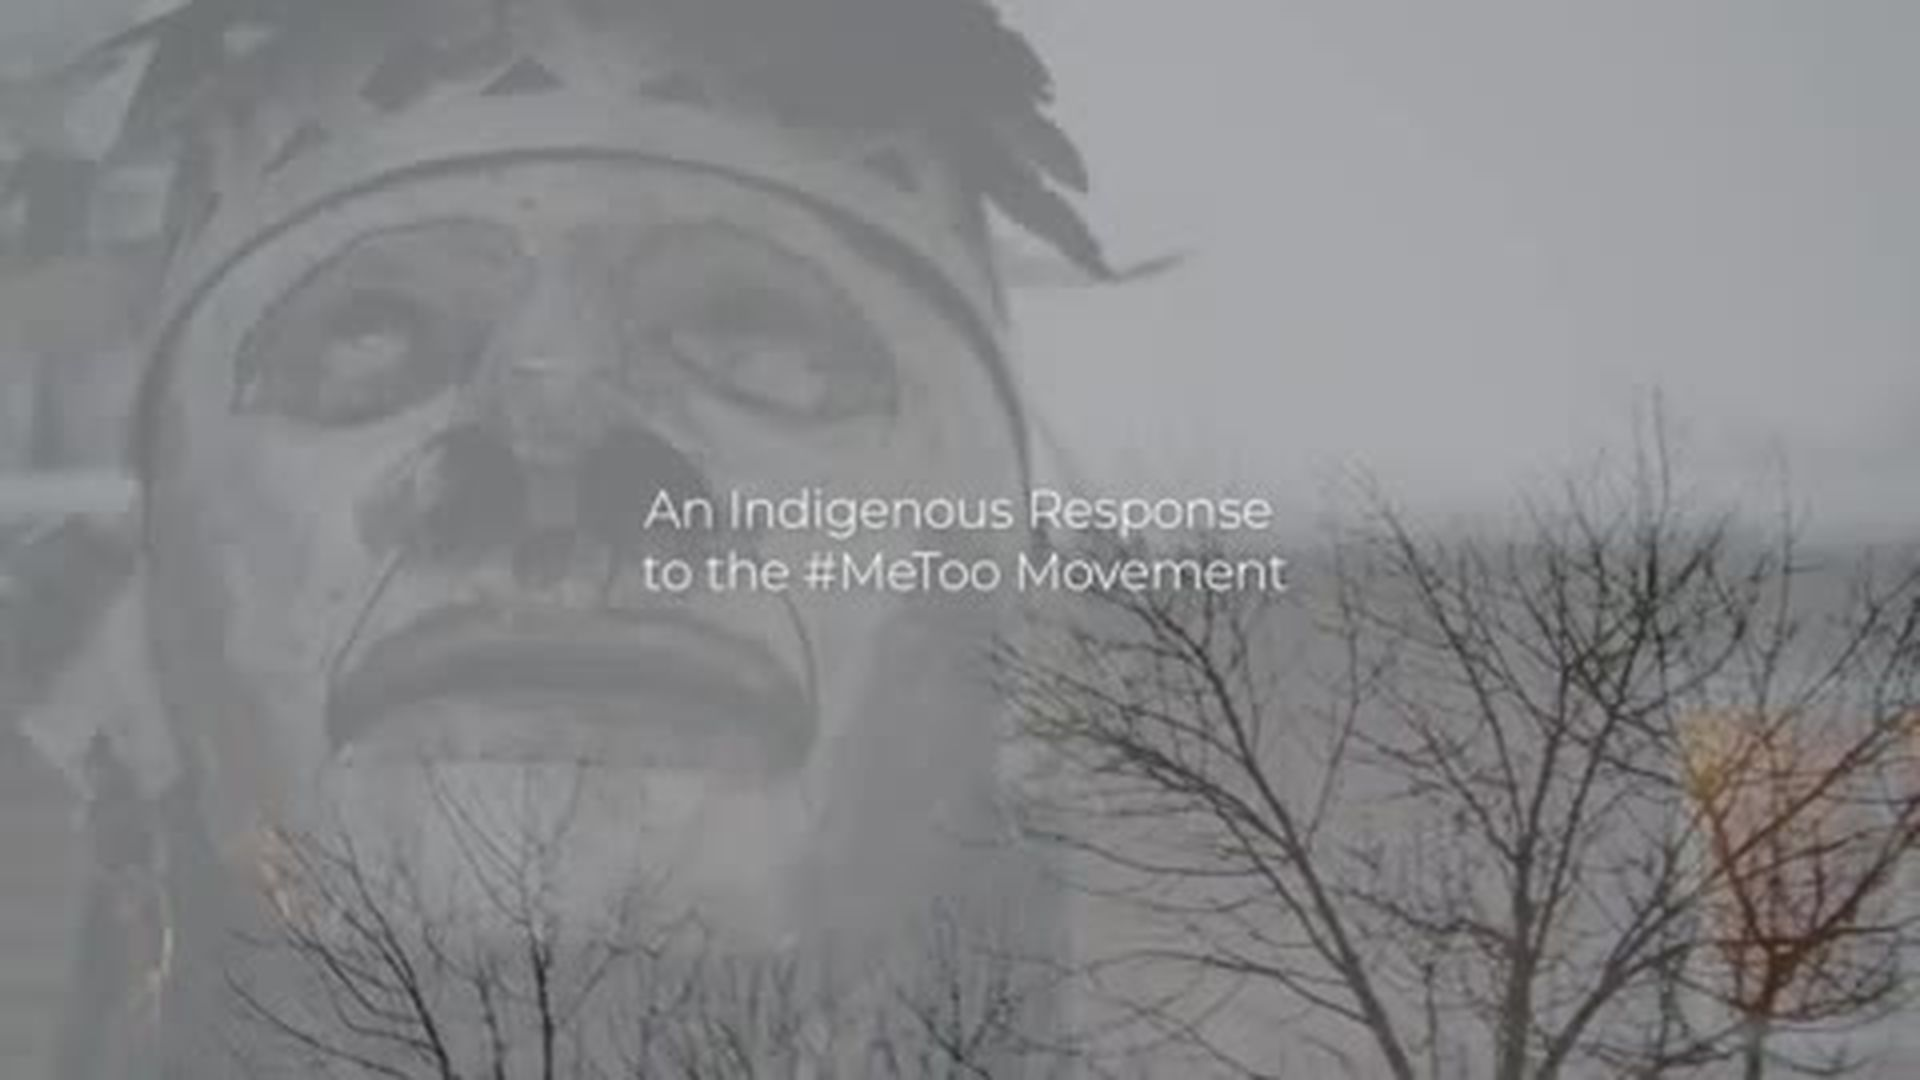 Rematriation - An Indigenous Response to the #MeToo Movement